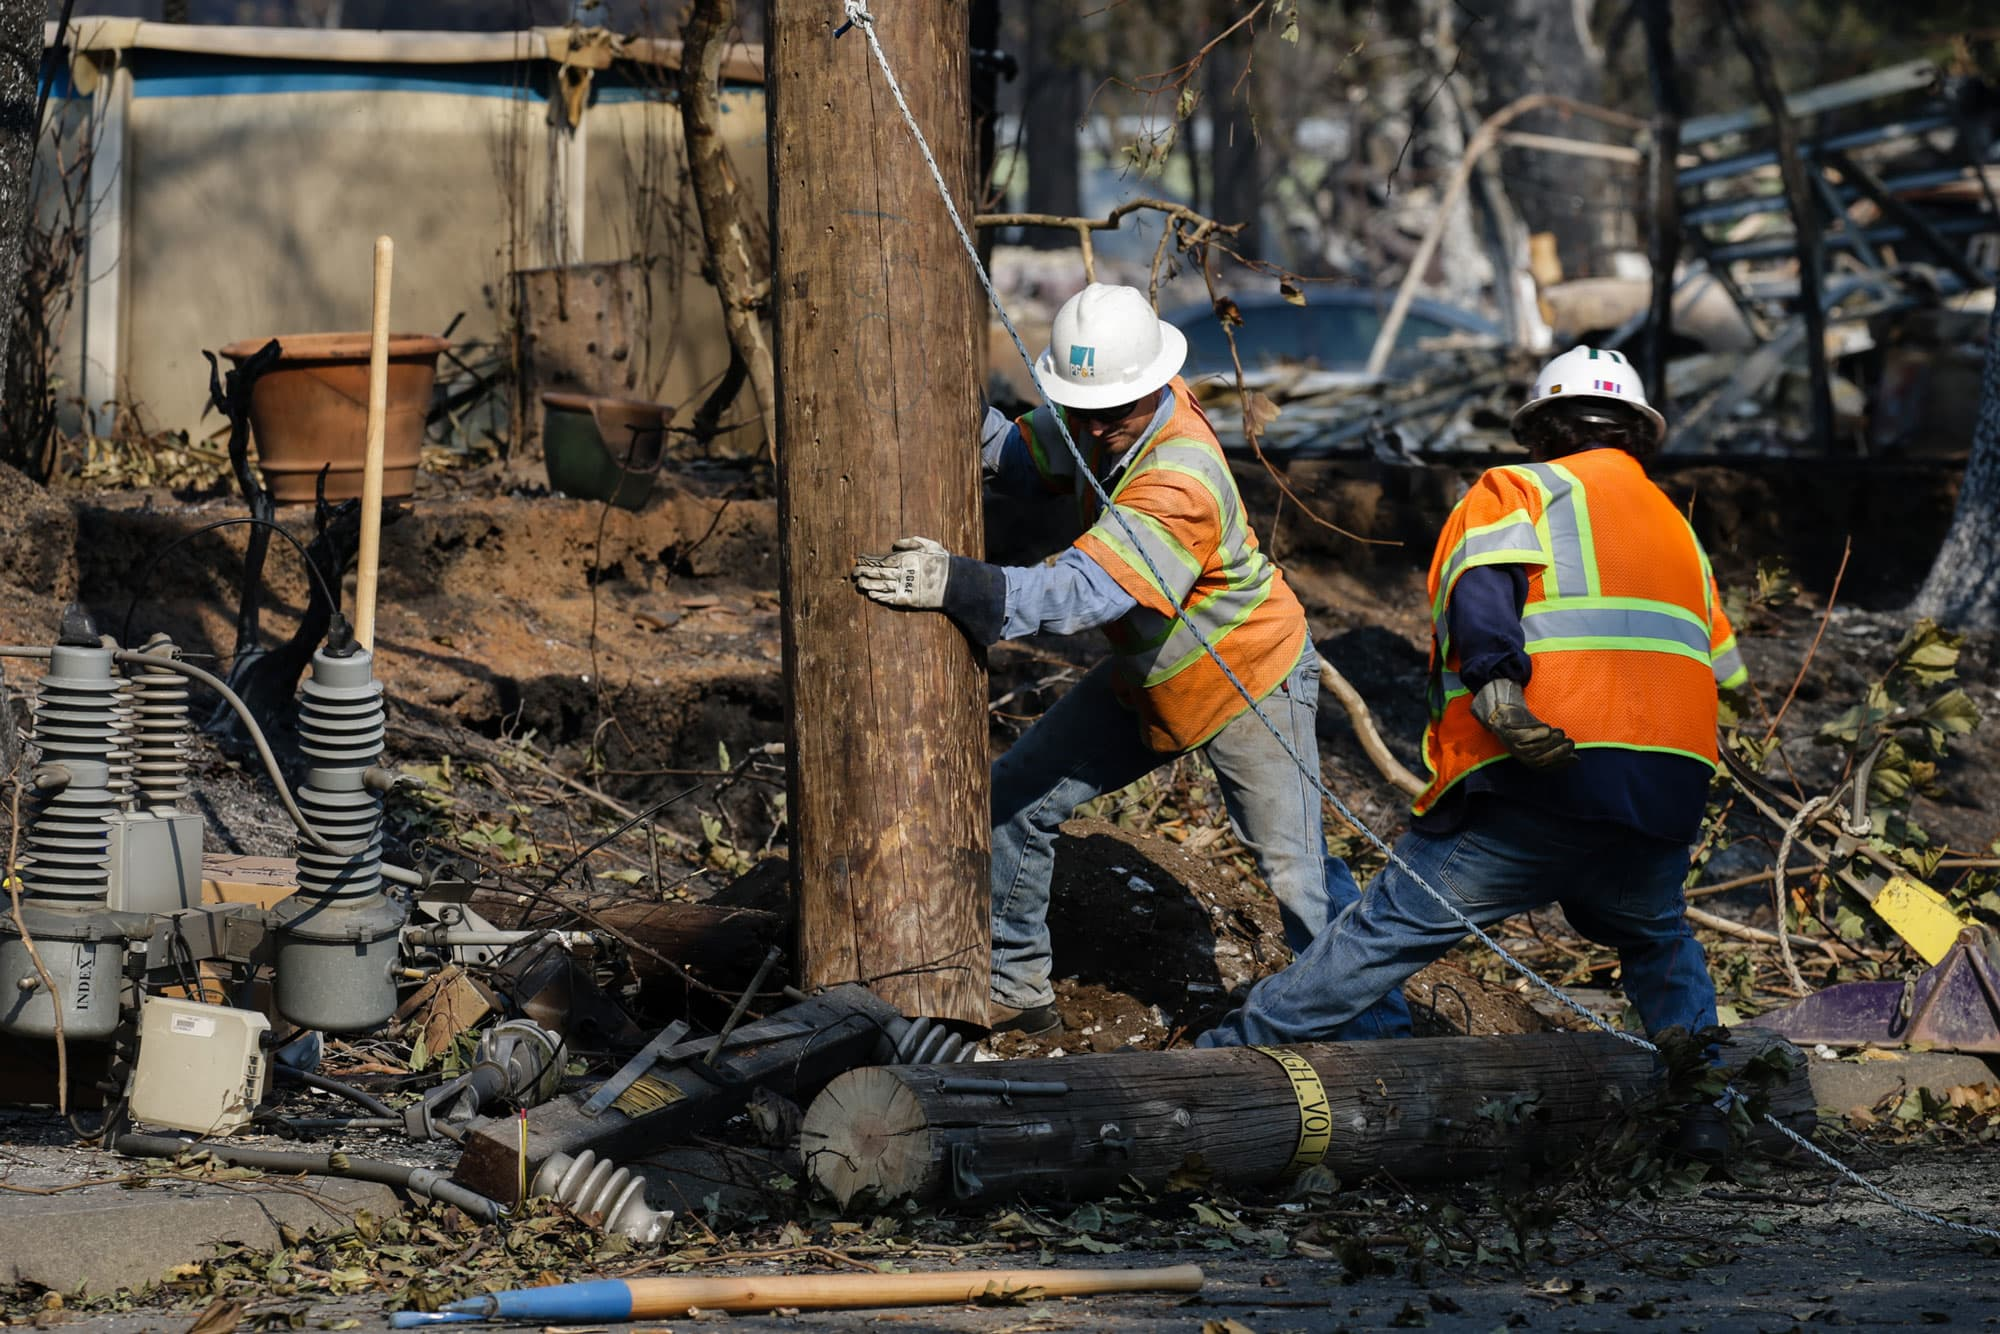 'There are lives at stake': PG&E criticized over blackouts to prevent California wildfires